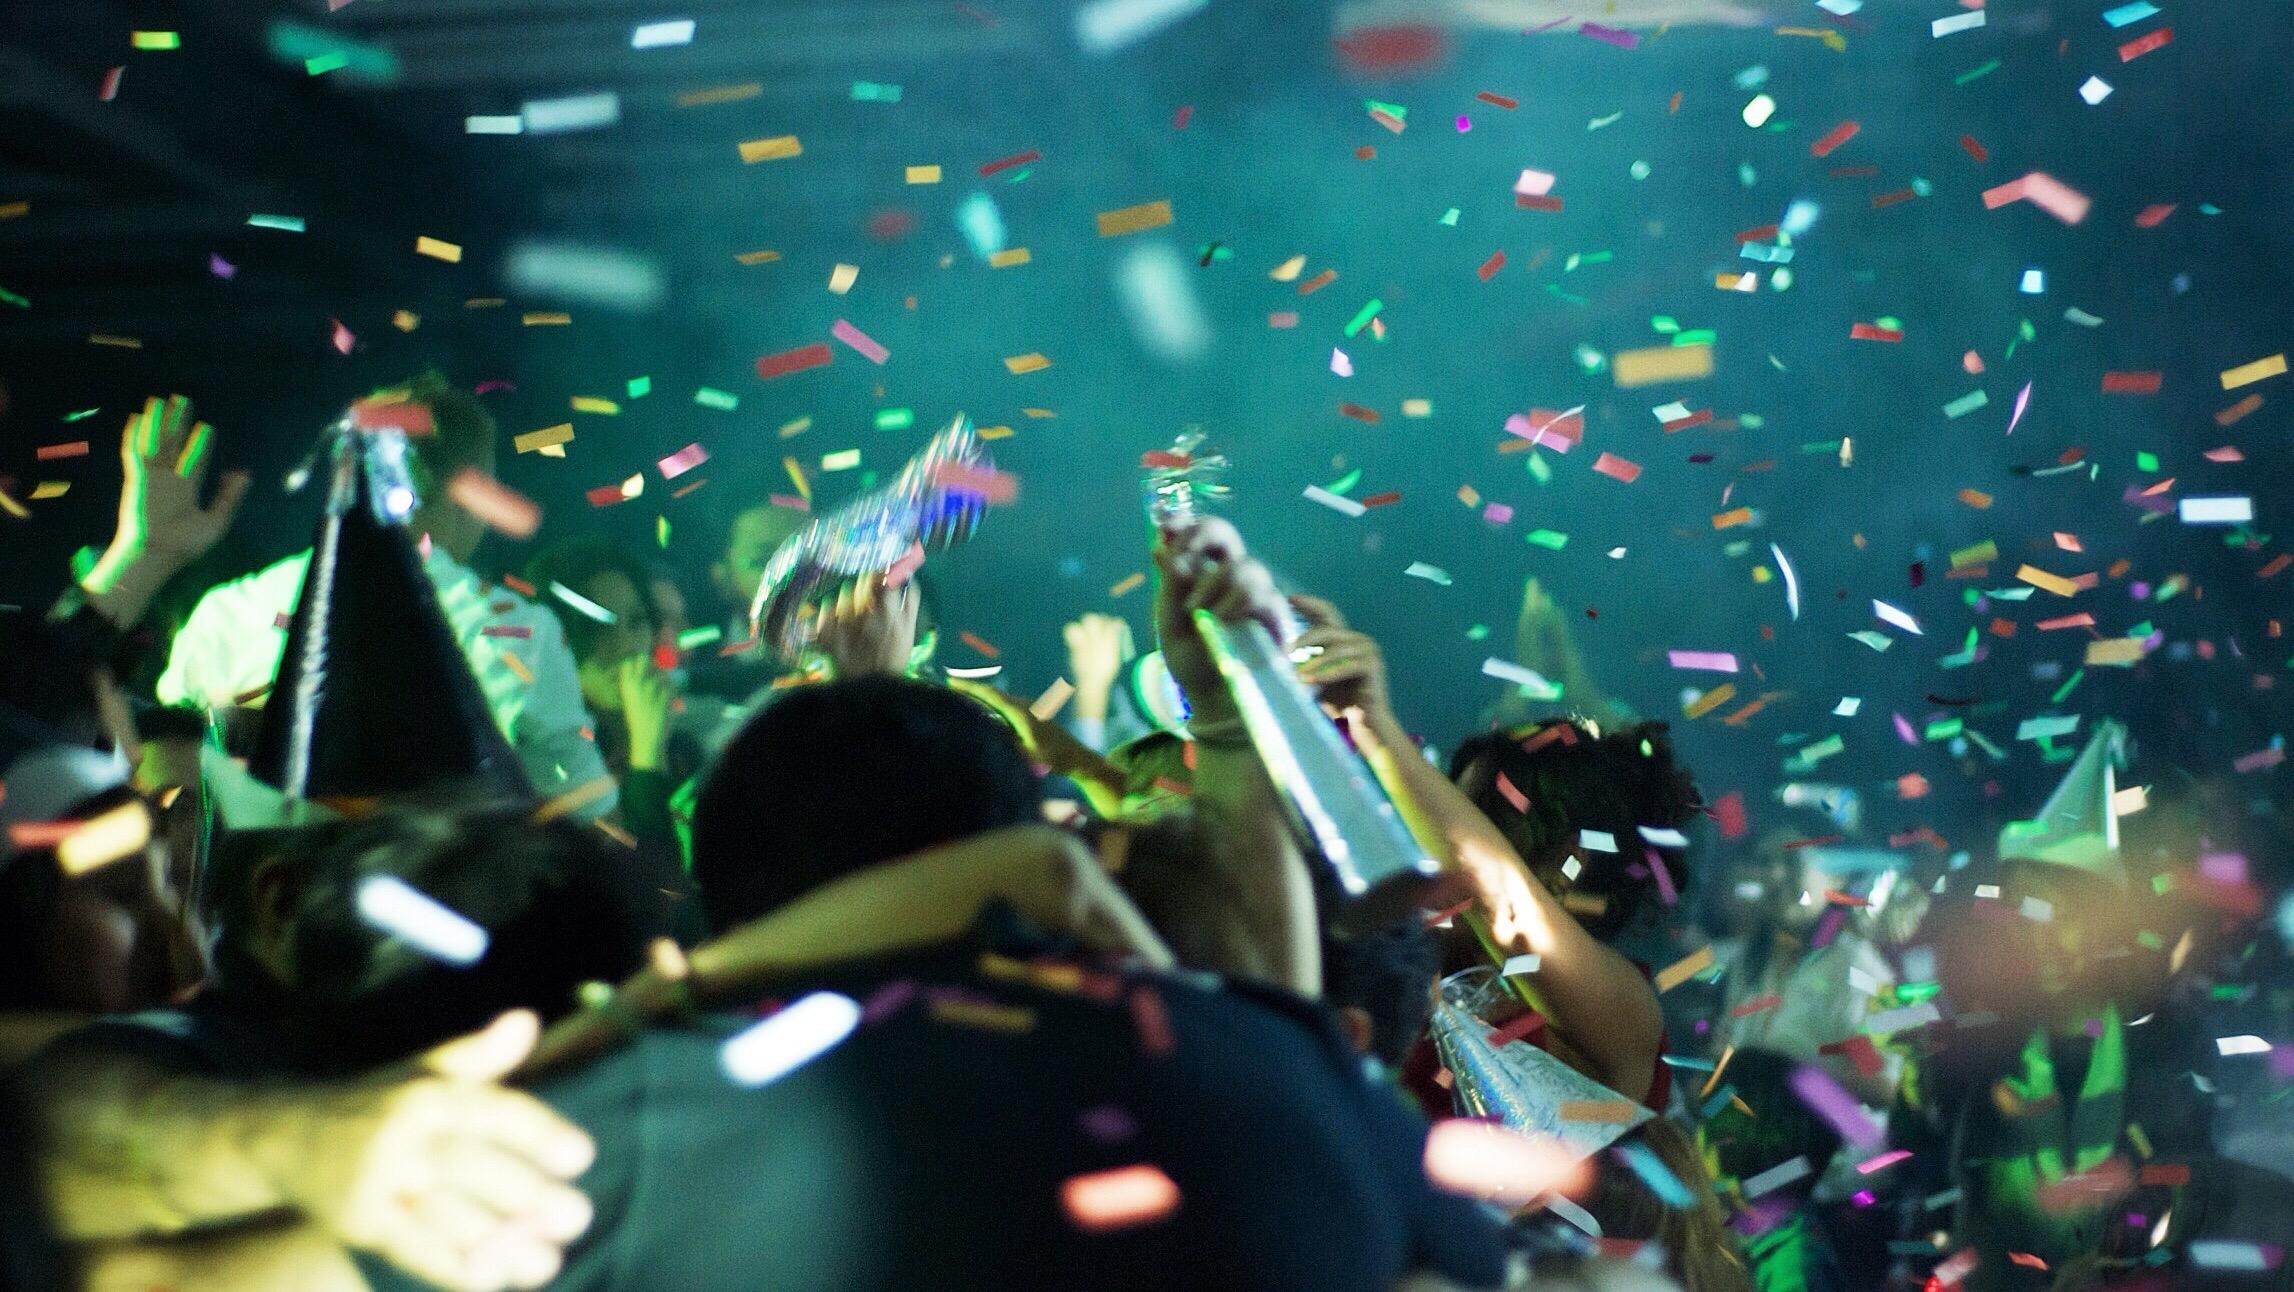 New Year's Eve at the Reveler